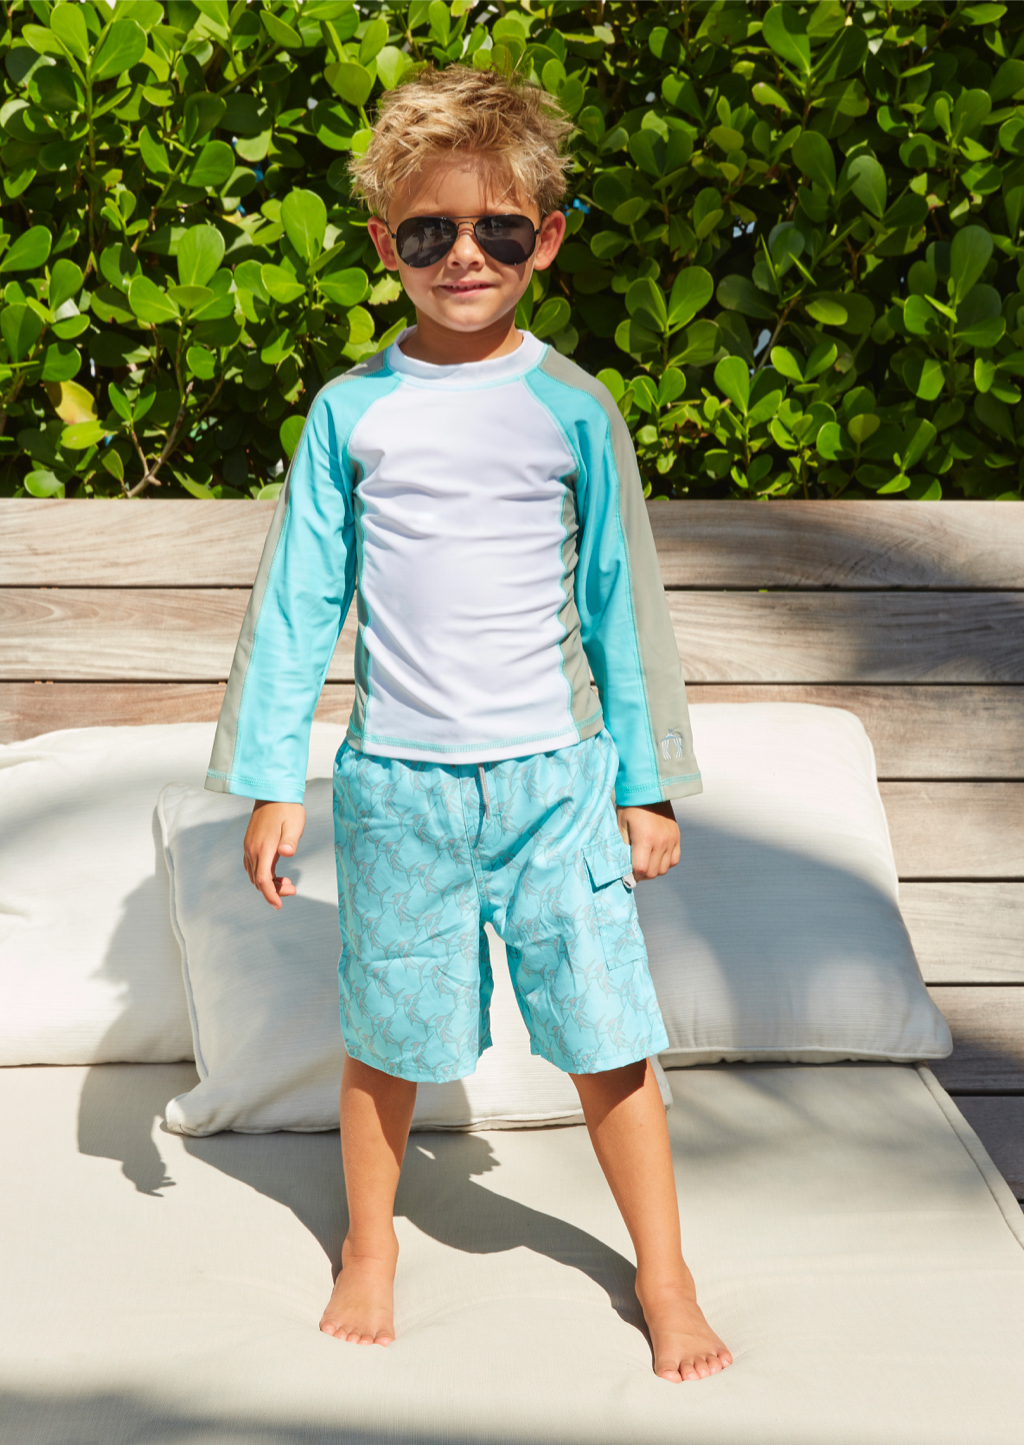 Little-Boys-Rashguard-Sets_Cabana-Life_Grey-Swordfish-Rashguard-Set-1.jpg